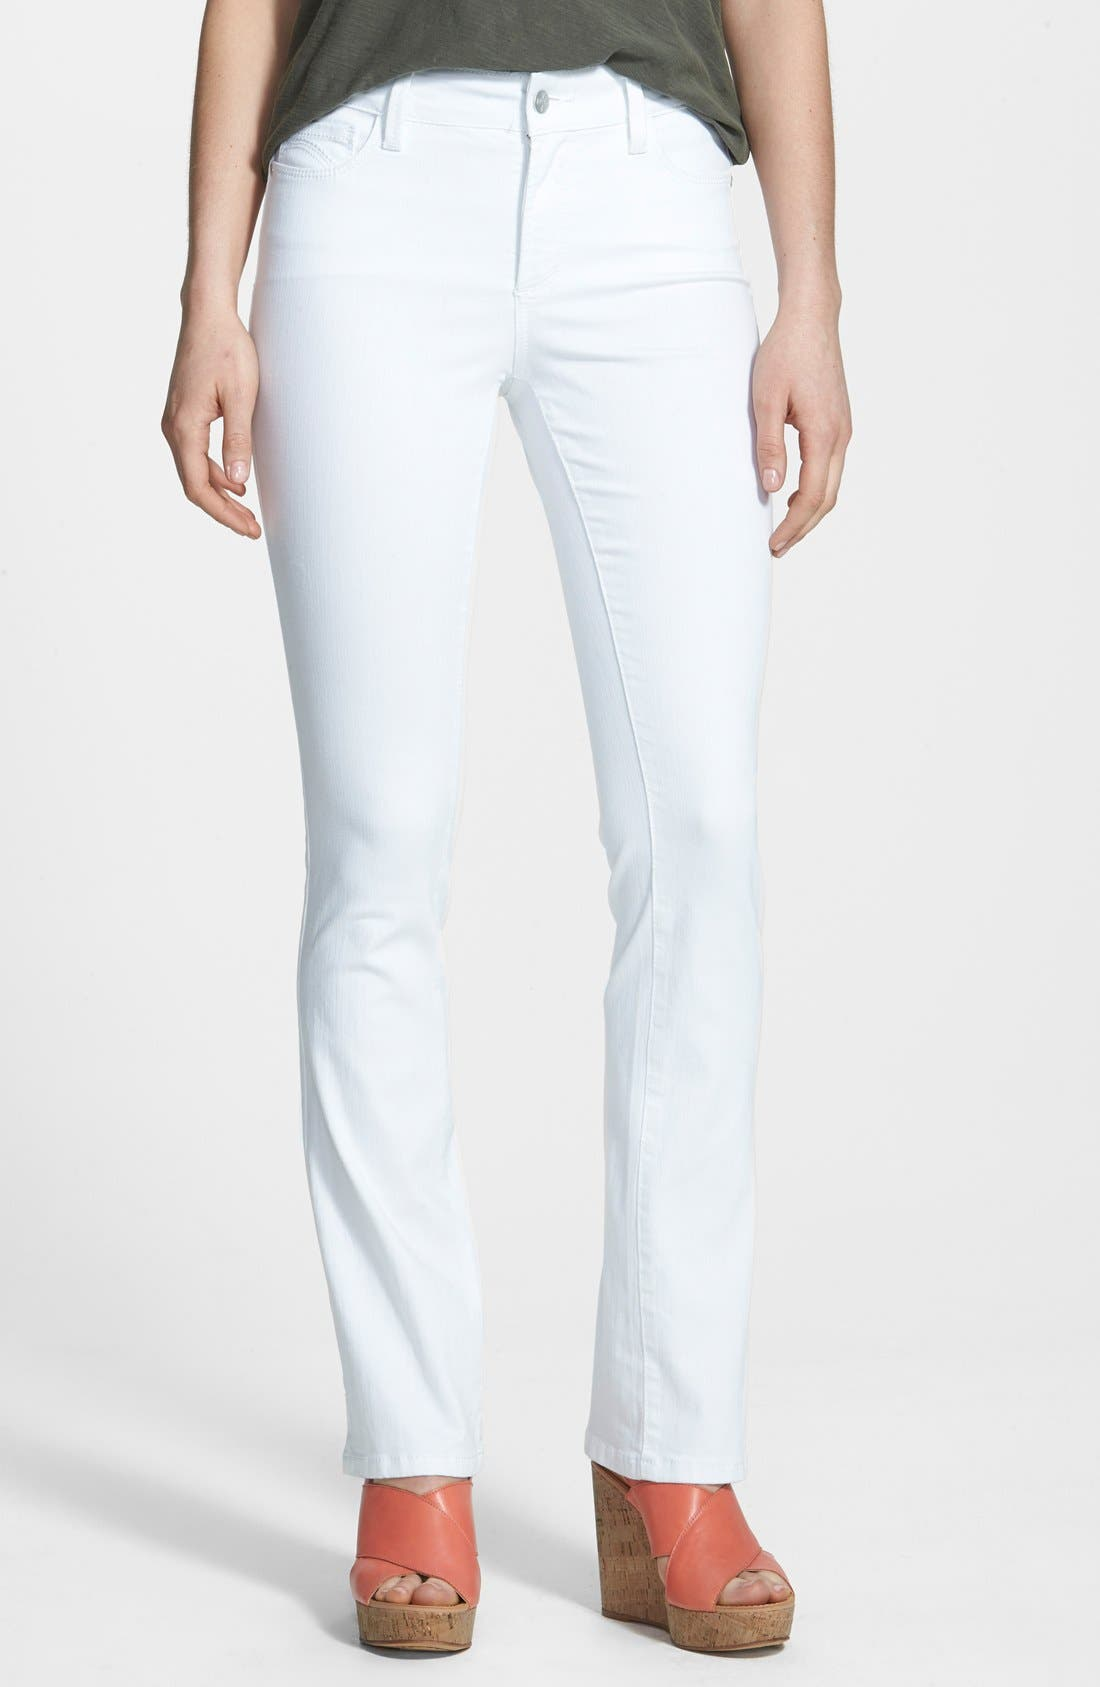 Main Image - NYDJ 'Billie' Stretch Mini Bootcut Jeans (Optic White) (Regular & Petite)